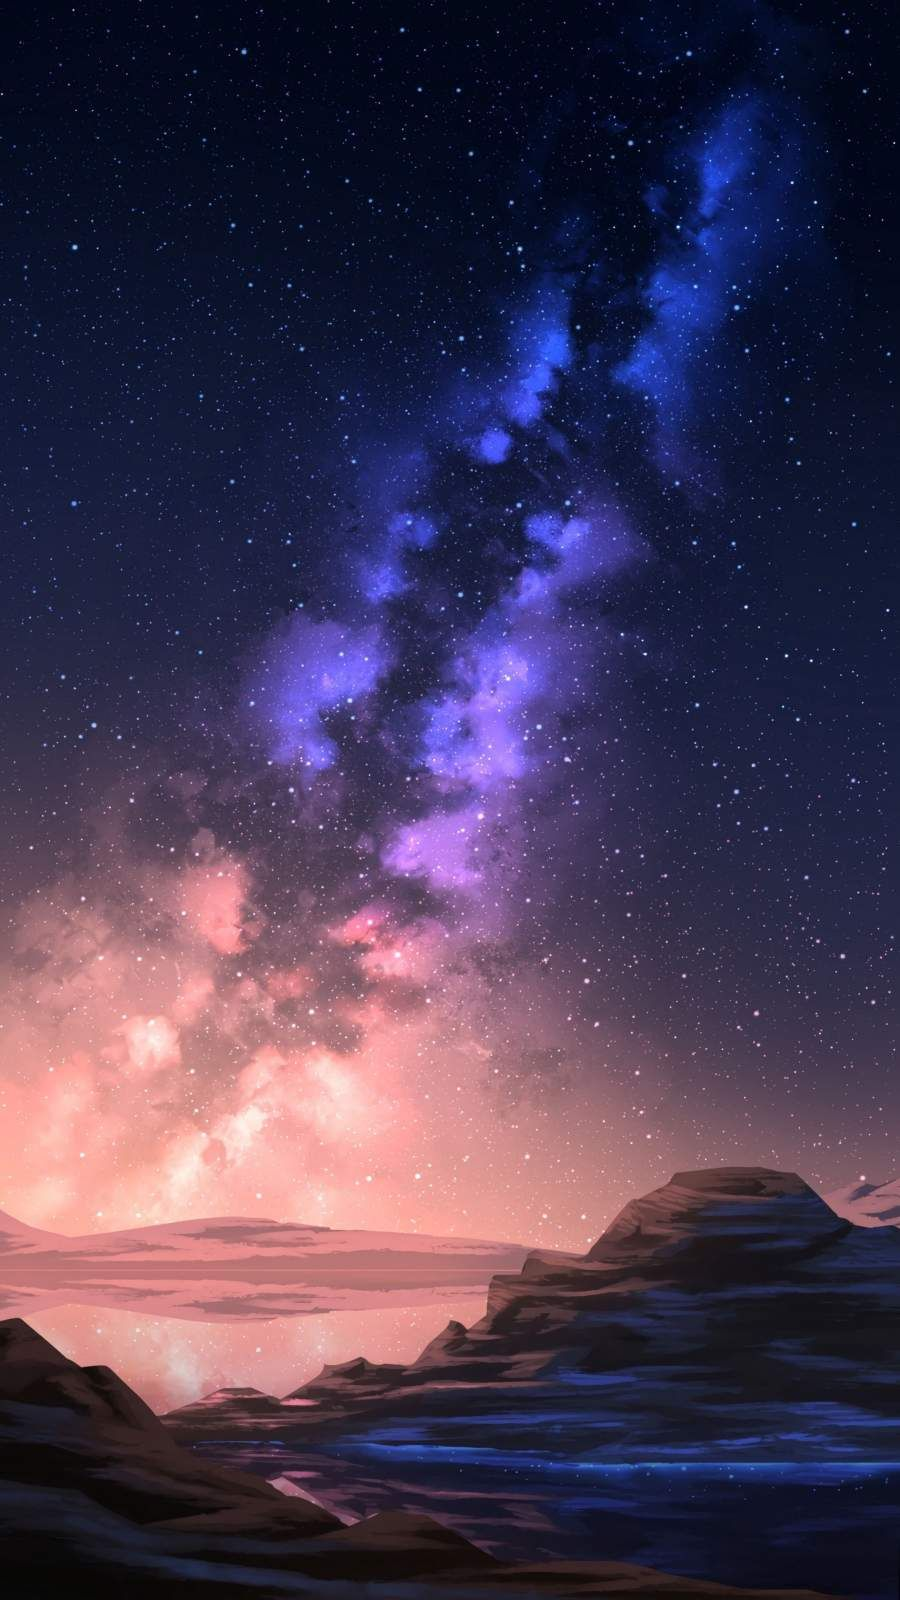 Milky Way Galaxy View in Night Scenery - iPhone Wallpapers